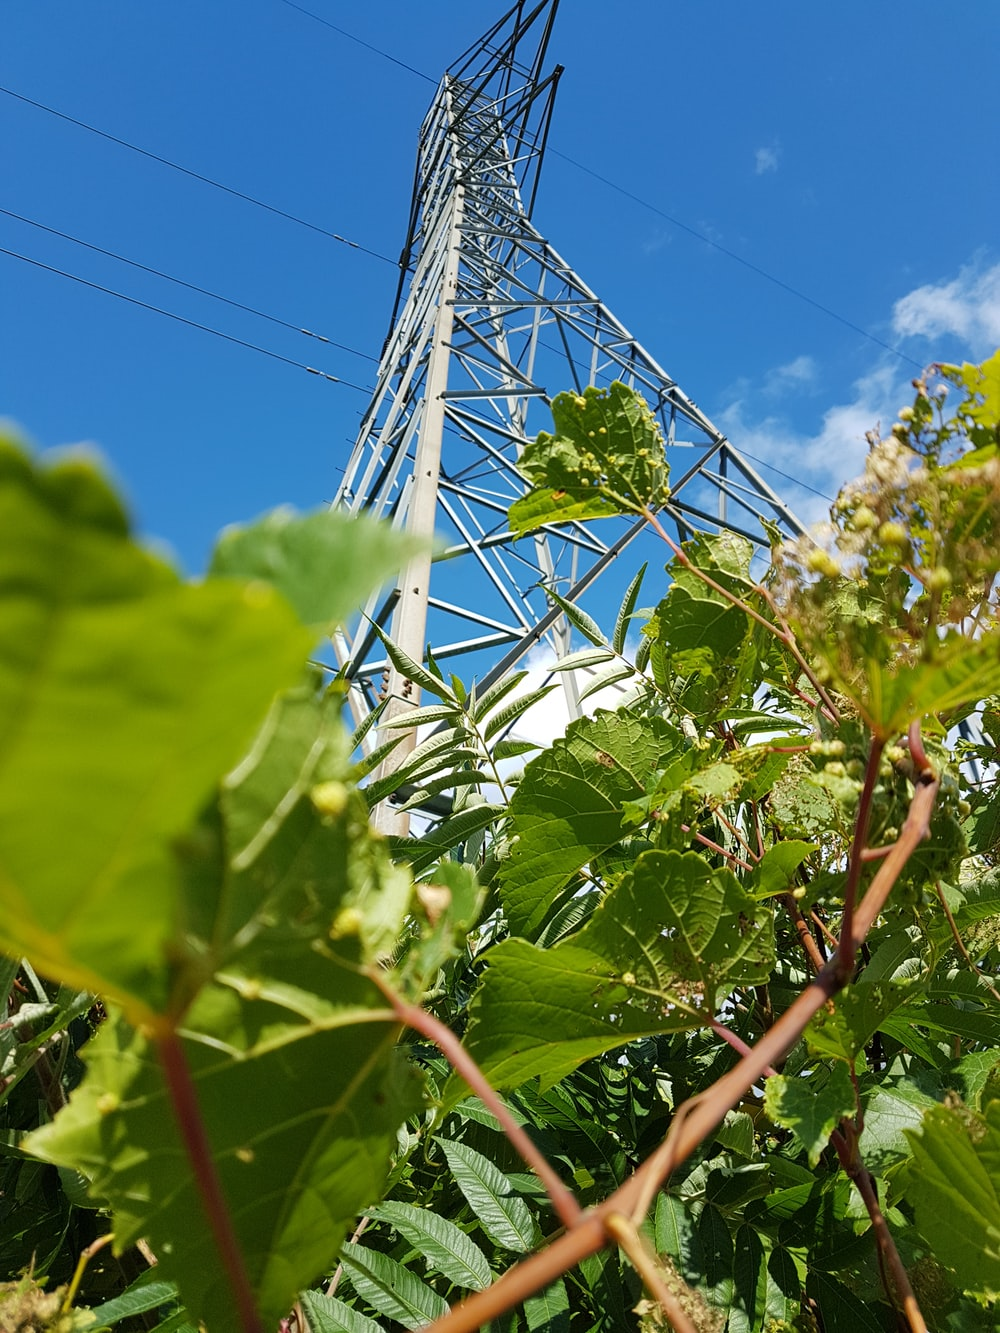 low-angle photo of green-leafed plants near gray transmission tower